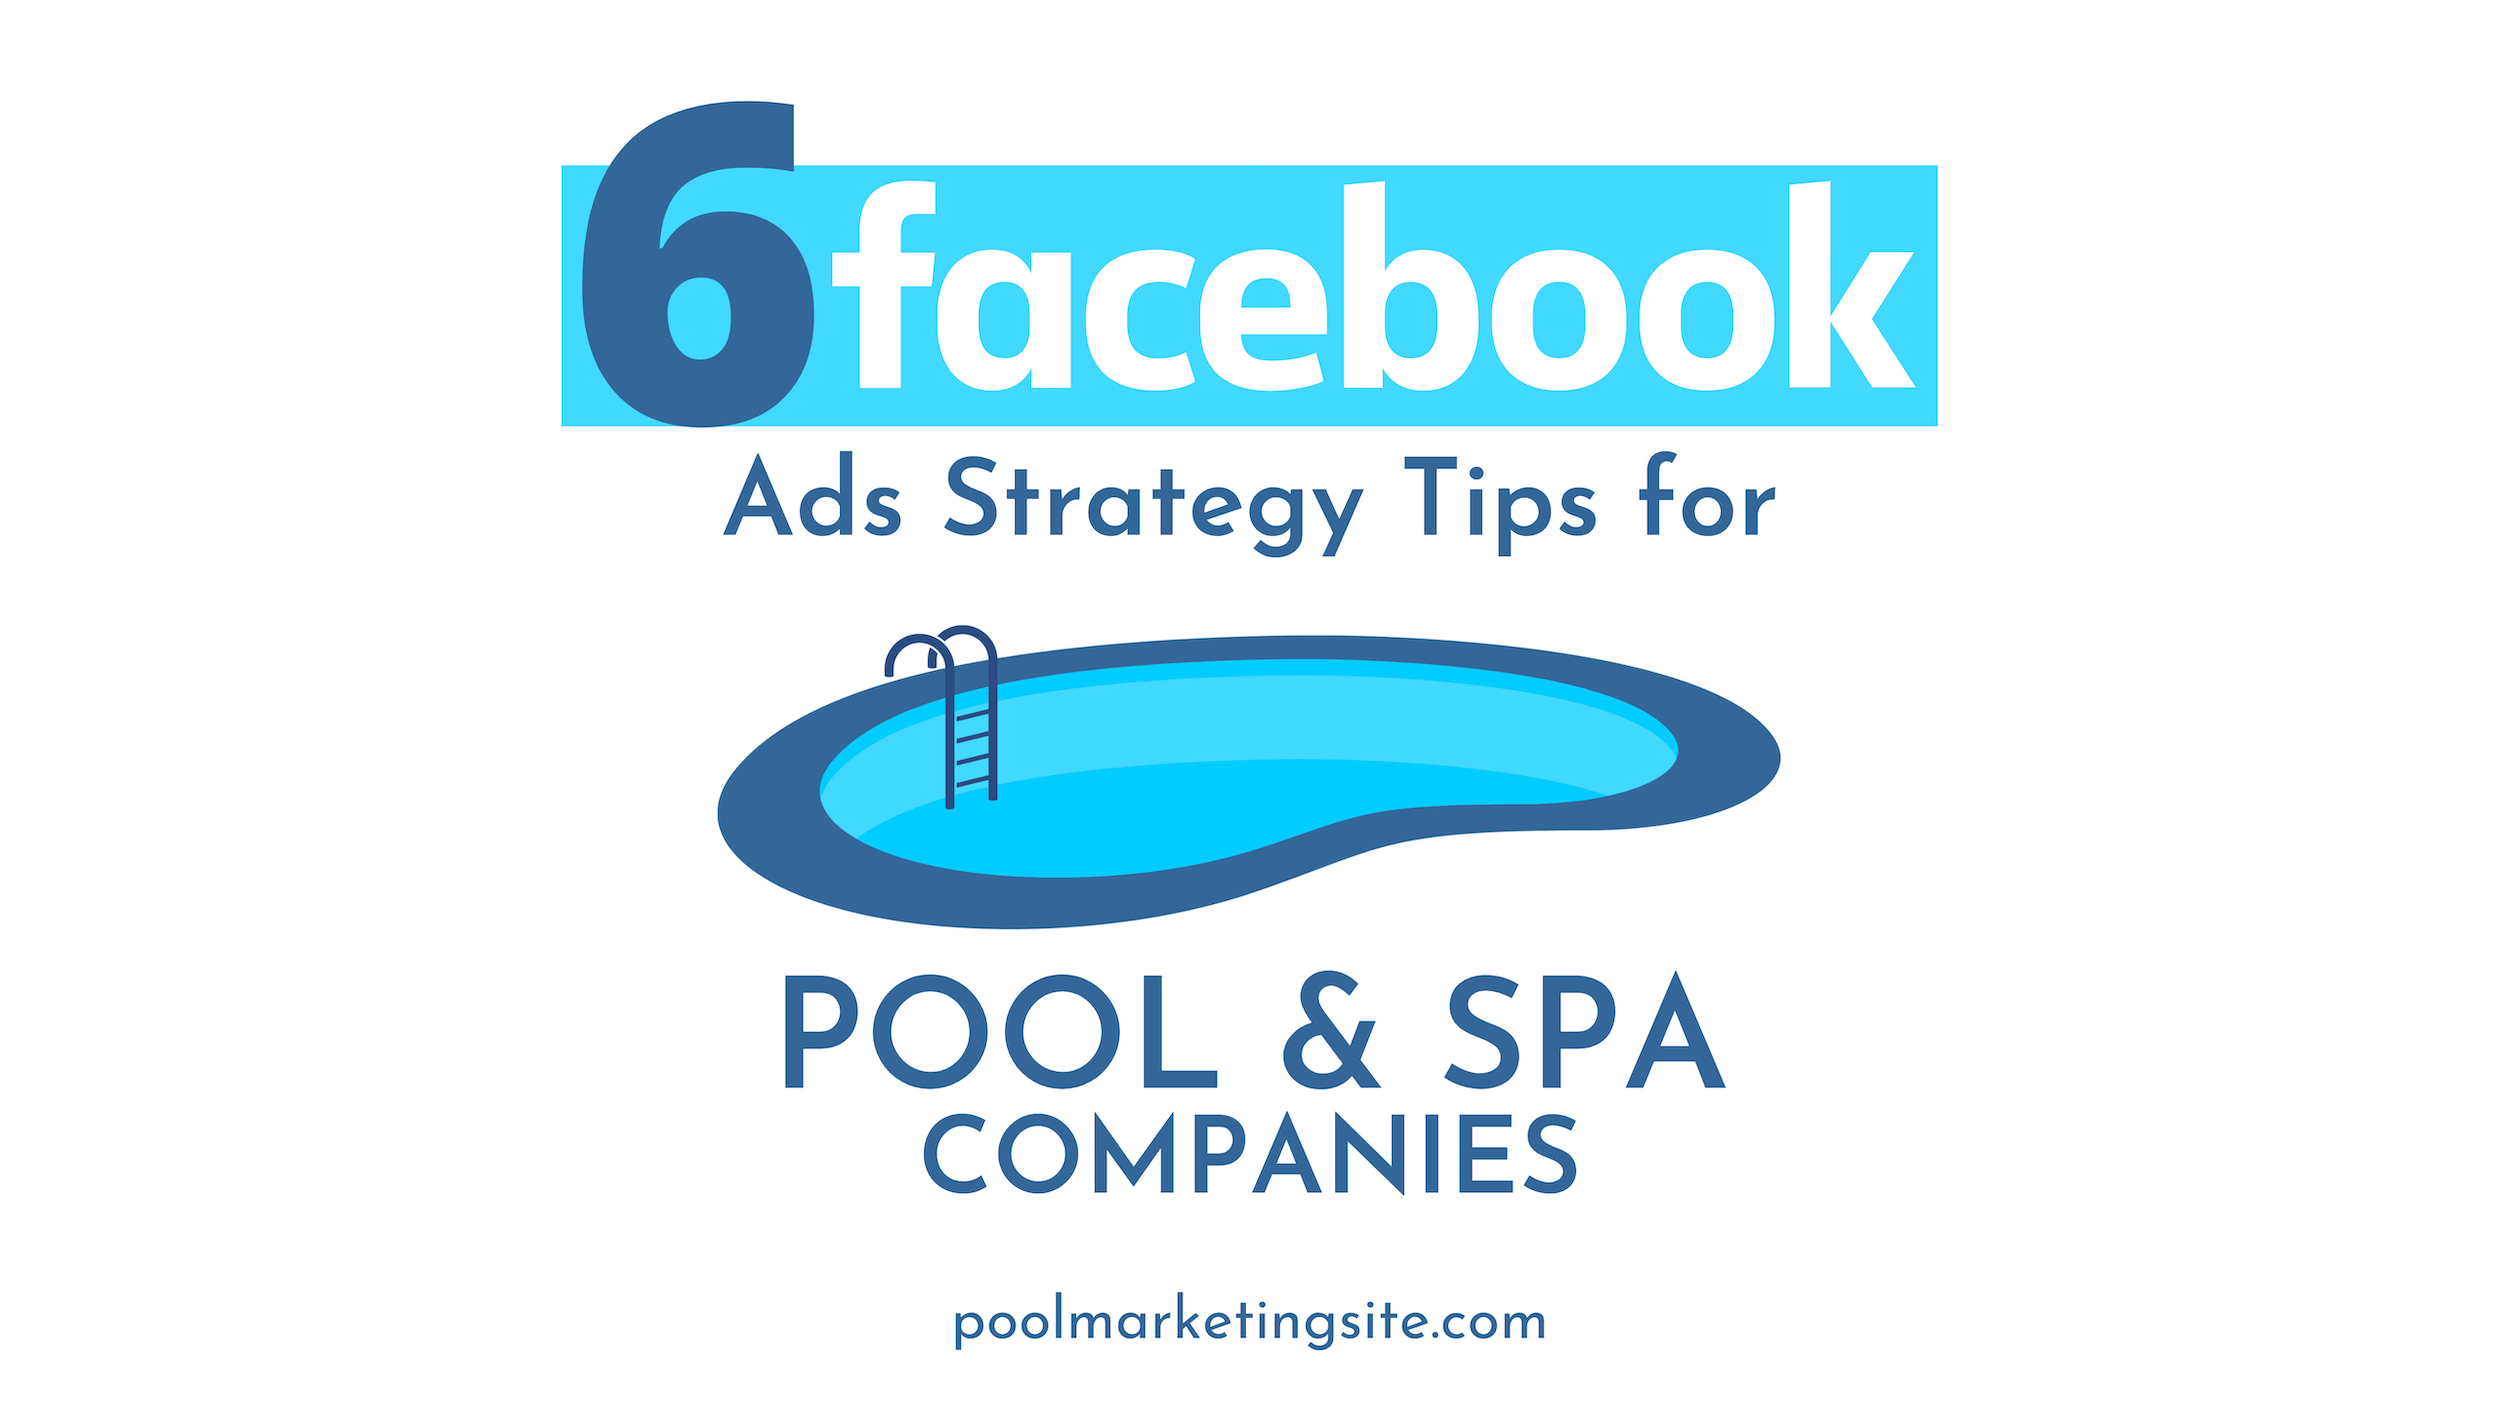 6 Facebook Ads Strategy Tips for Pool & Spa Companies